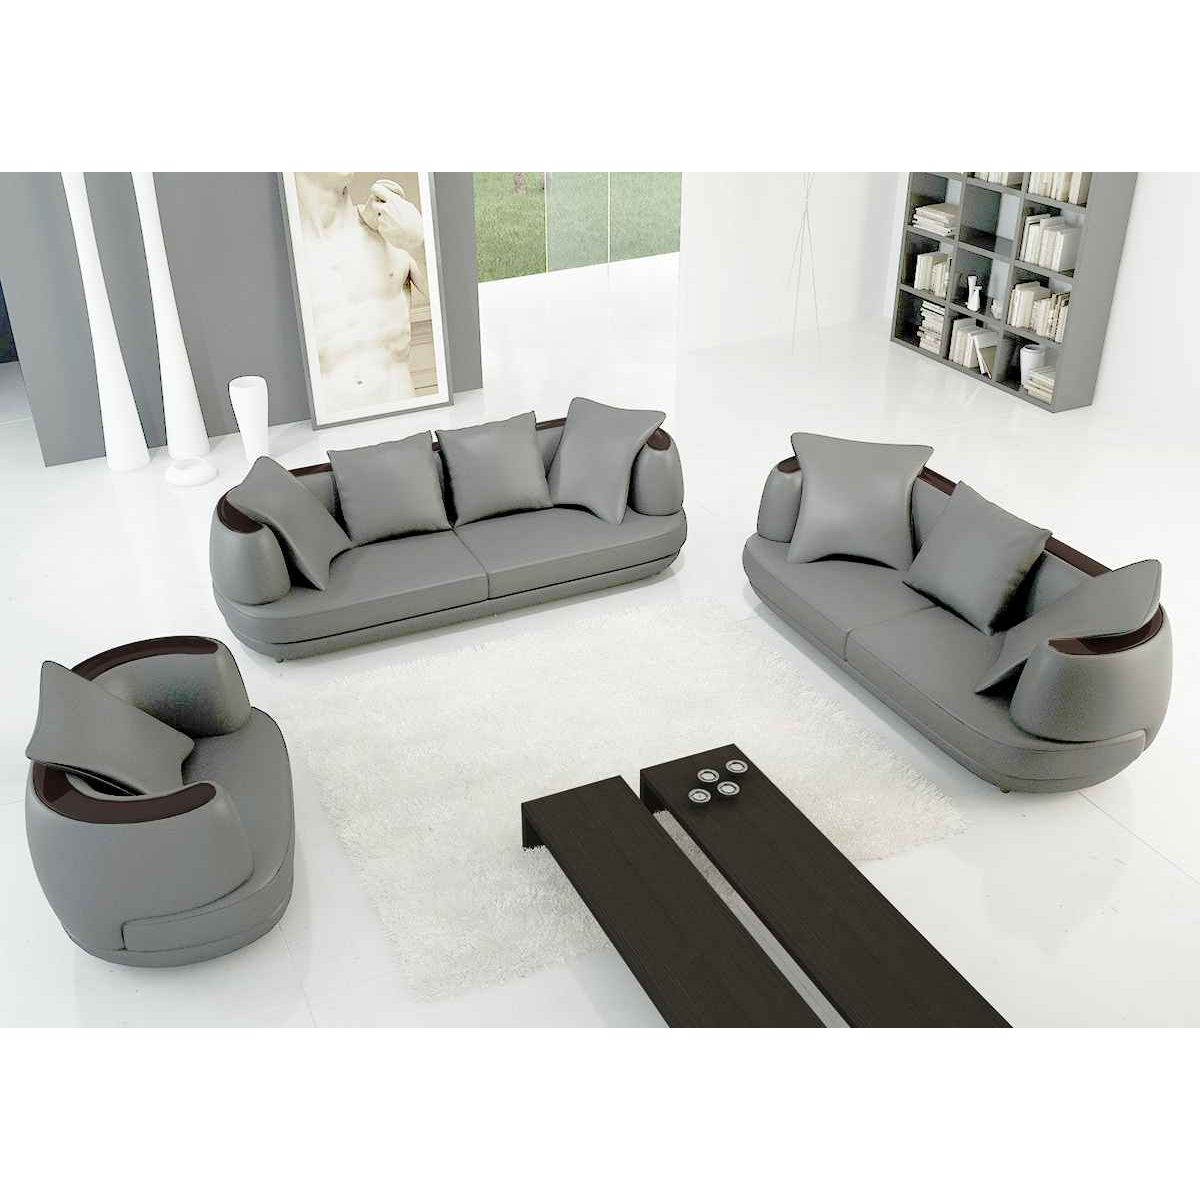 Deco in paris ensemble canape 3 2 1 places en cuir gris clair ryga ryga gri - Ensemble canape cuir ...